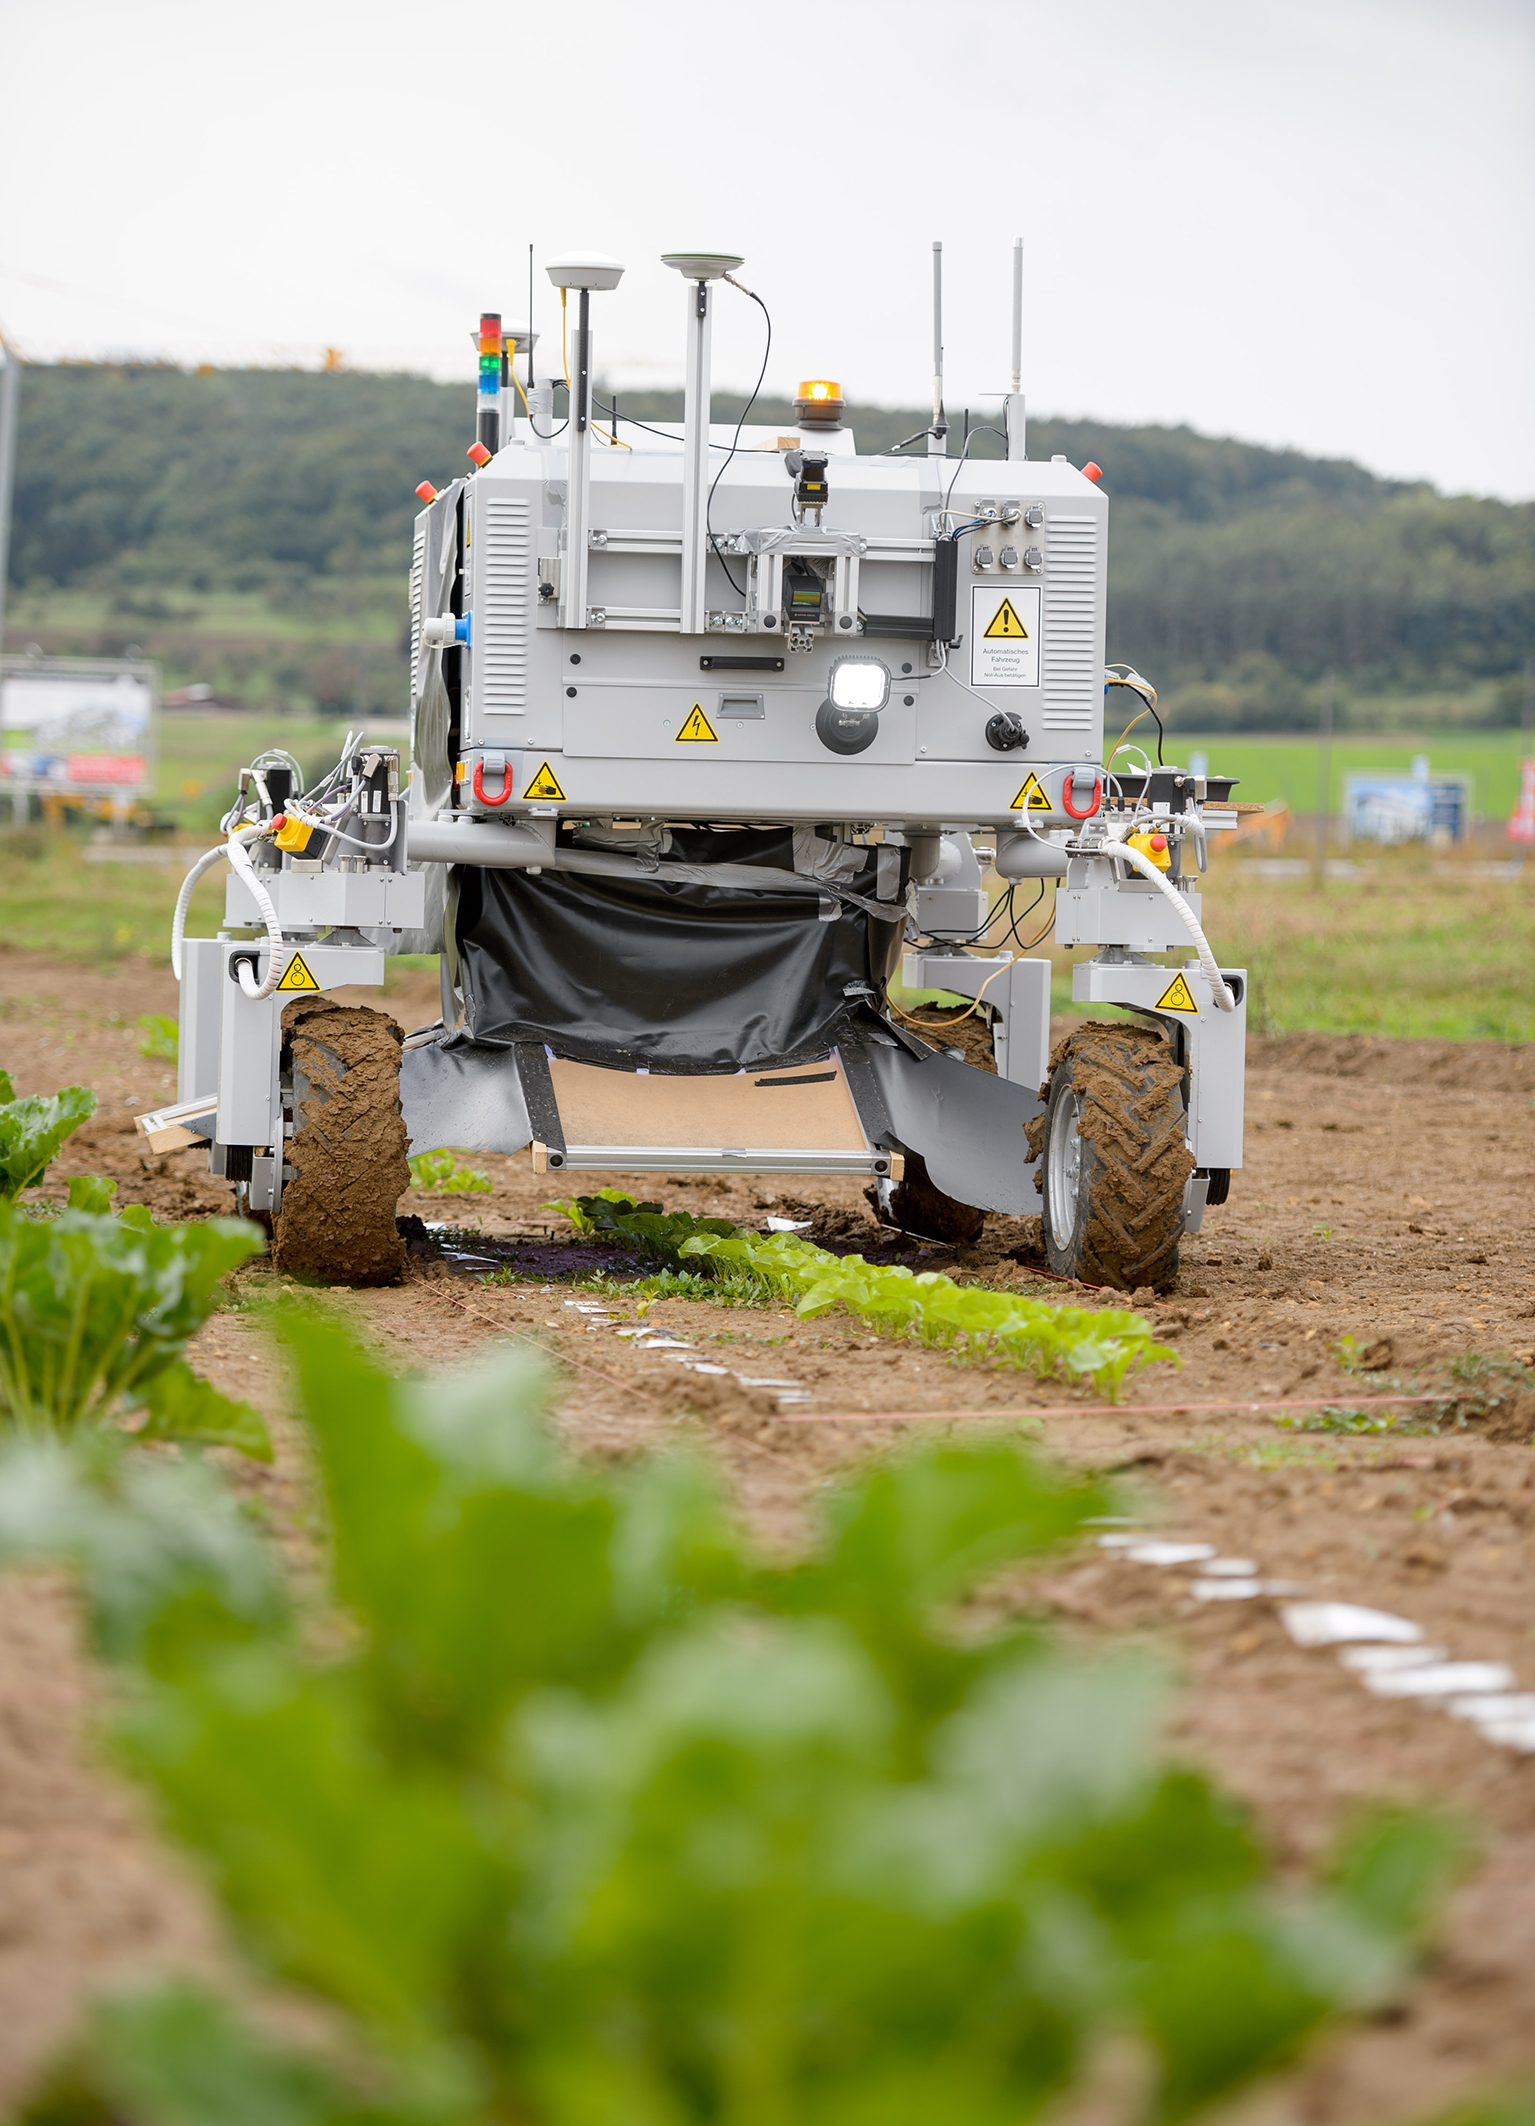 On the beet field of the future